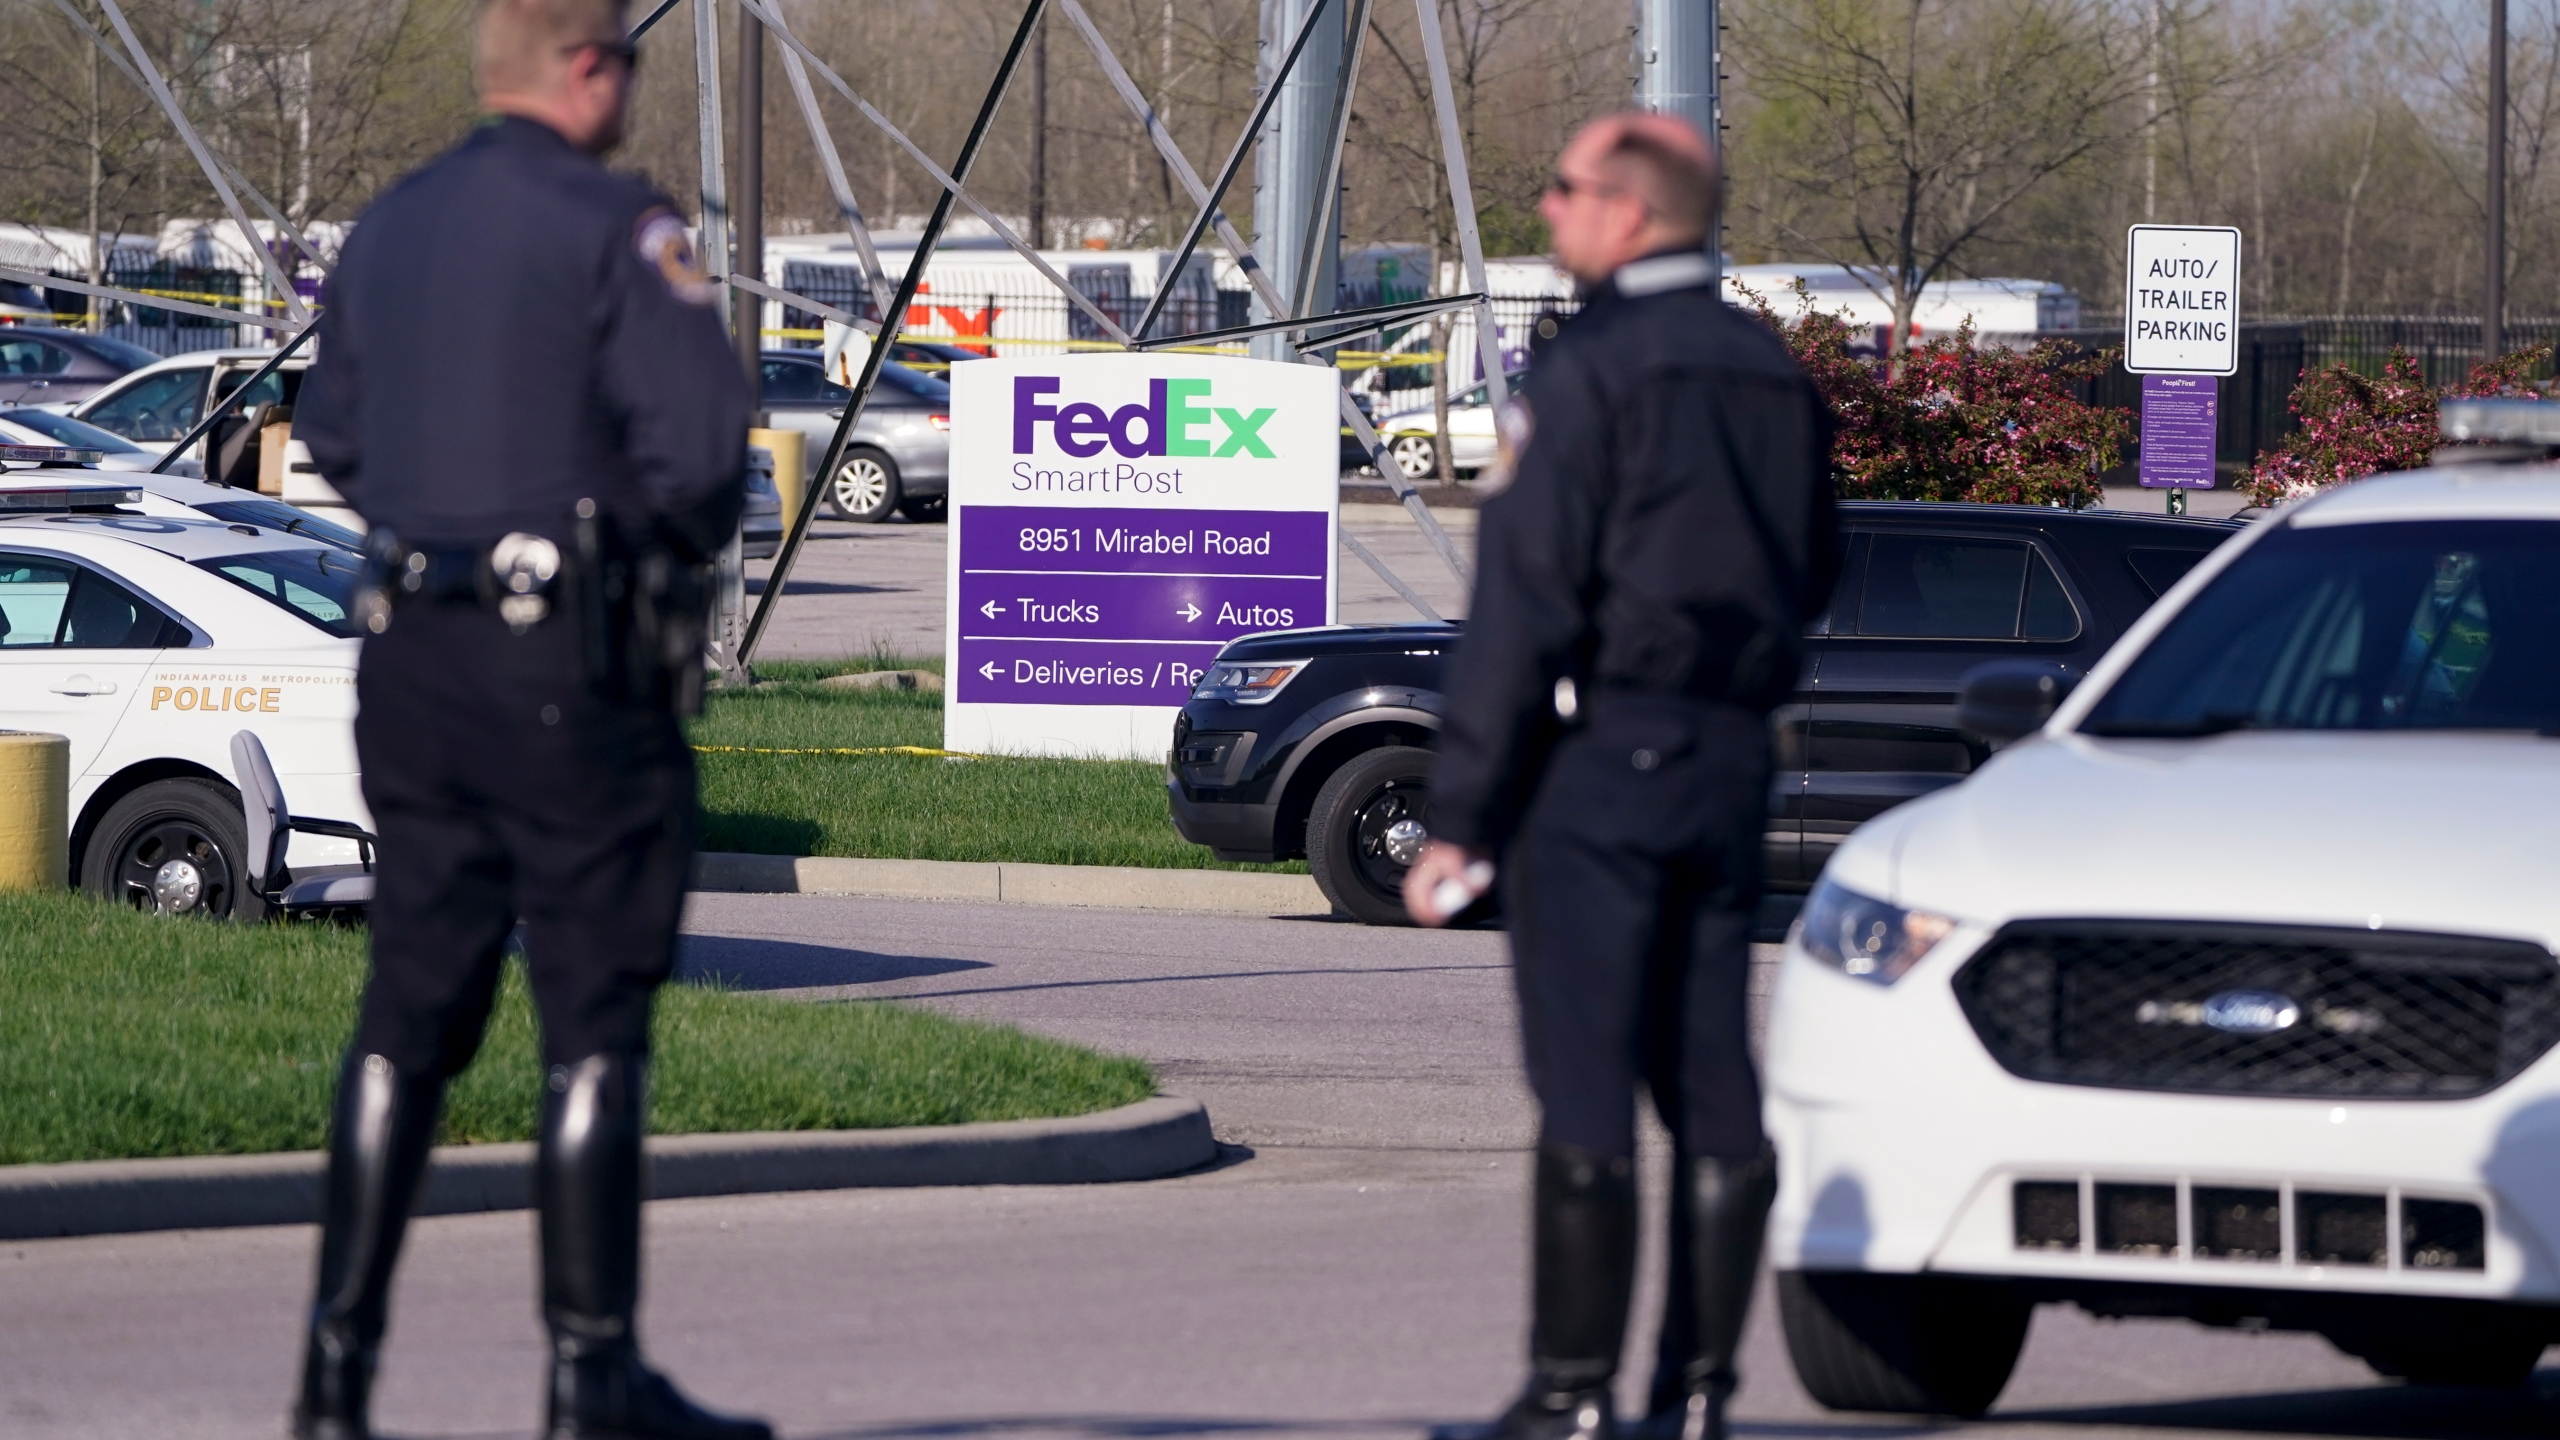 Police stand near the scene where multiple people were shot at the FedEx Ground facility early Friday morning, April 16, 2021, in Indianapolis. (AP Photo/Michael Conroy)